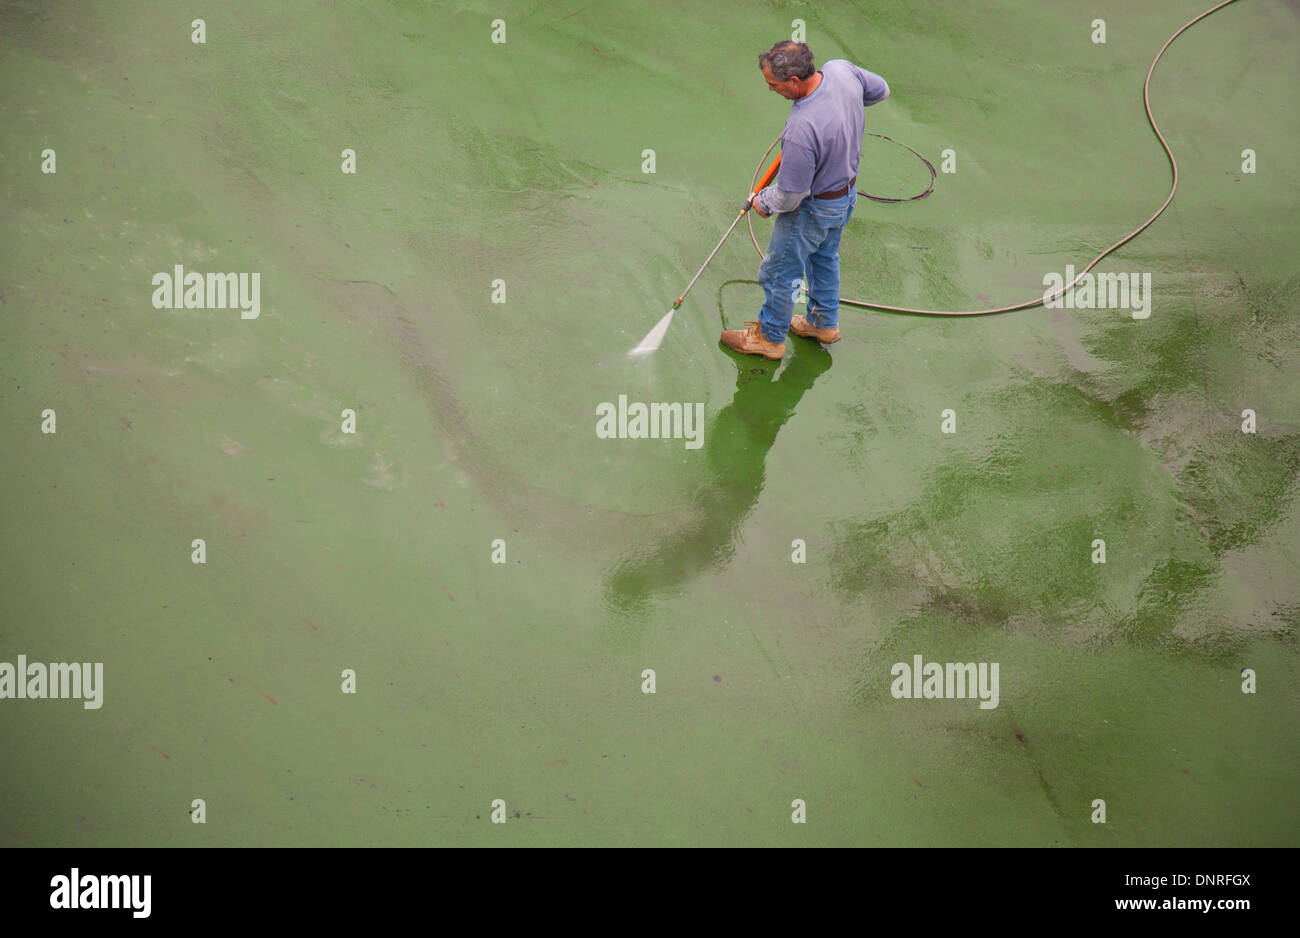 A keletnemet lanyok eneke   made in hungaria 457 - Rubber Mats Cleaning Stock Photo Man Cleaning Sports Rubber Mats Floor